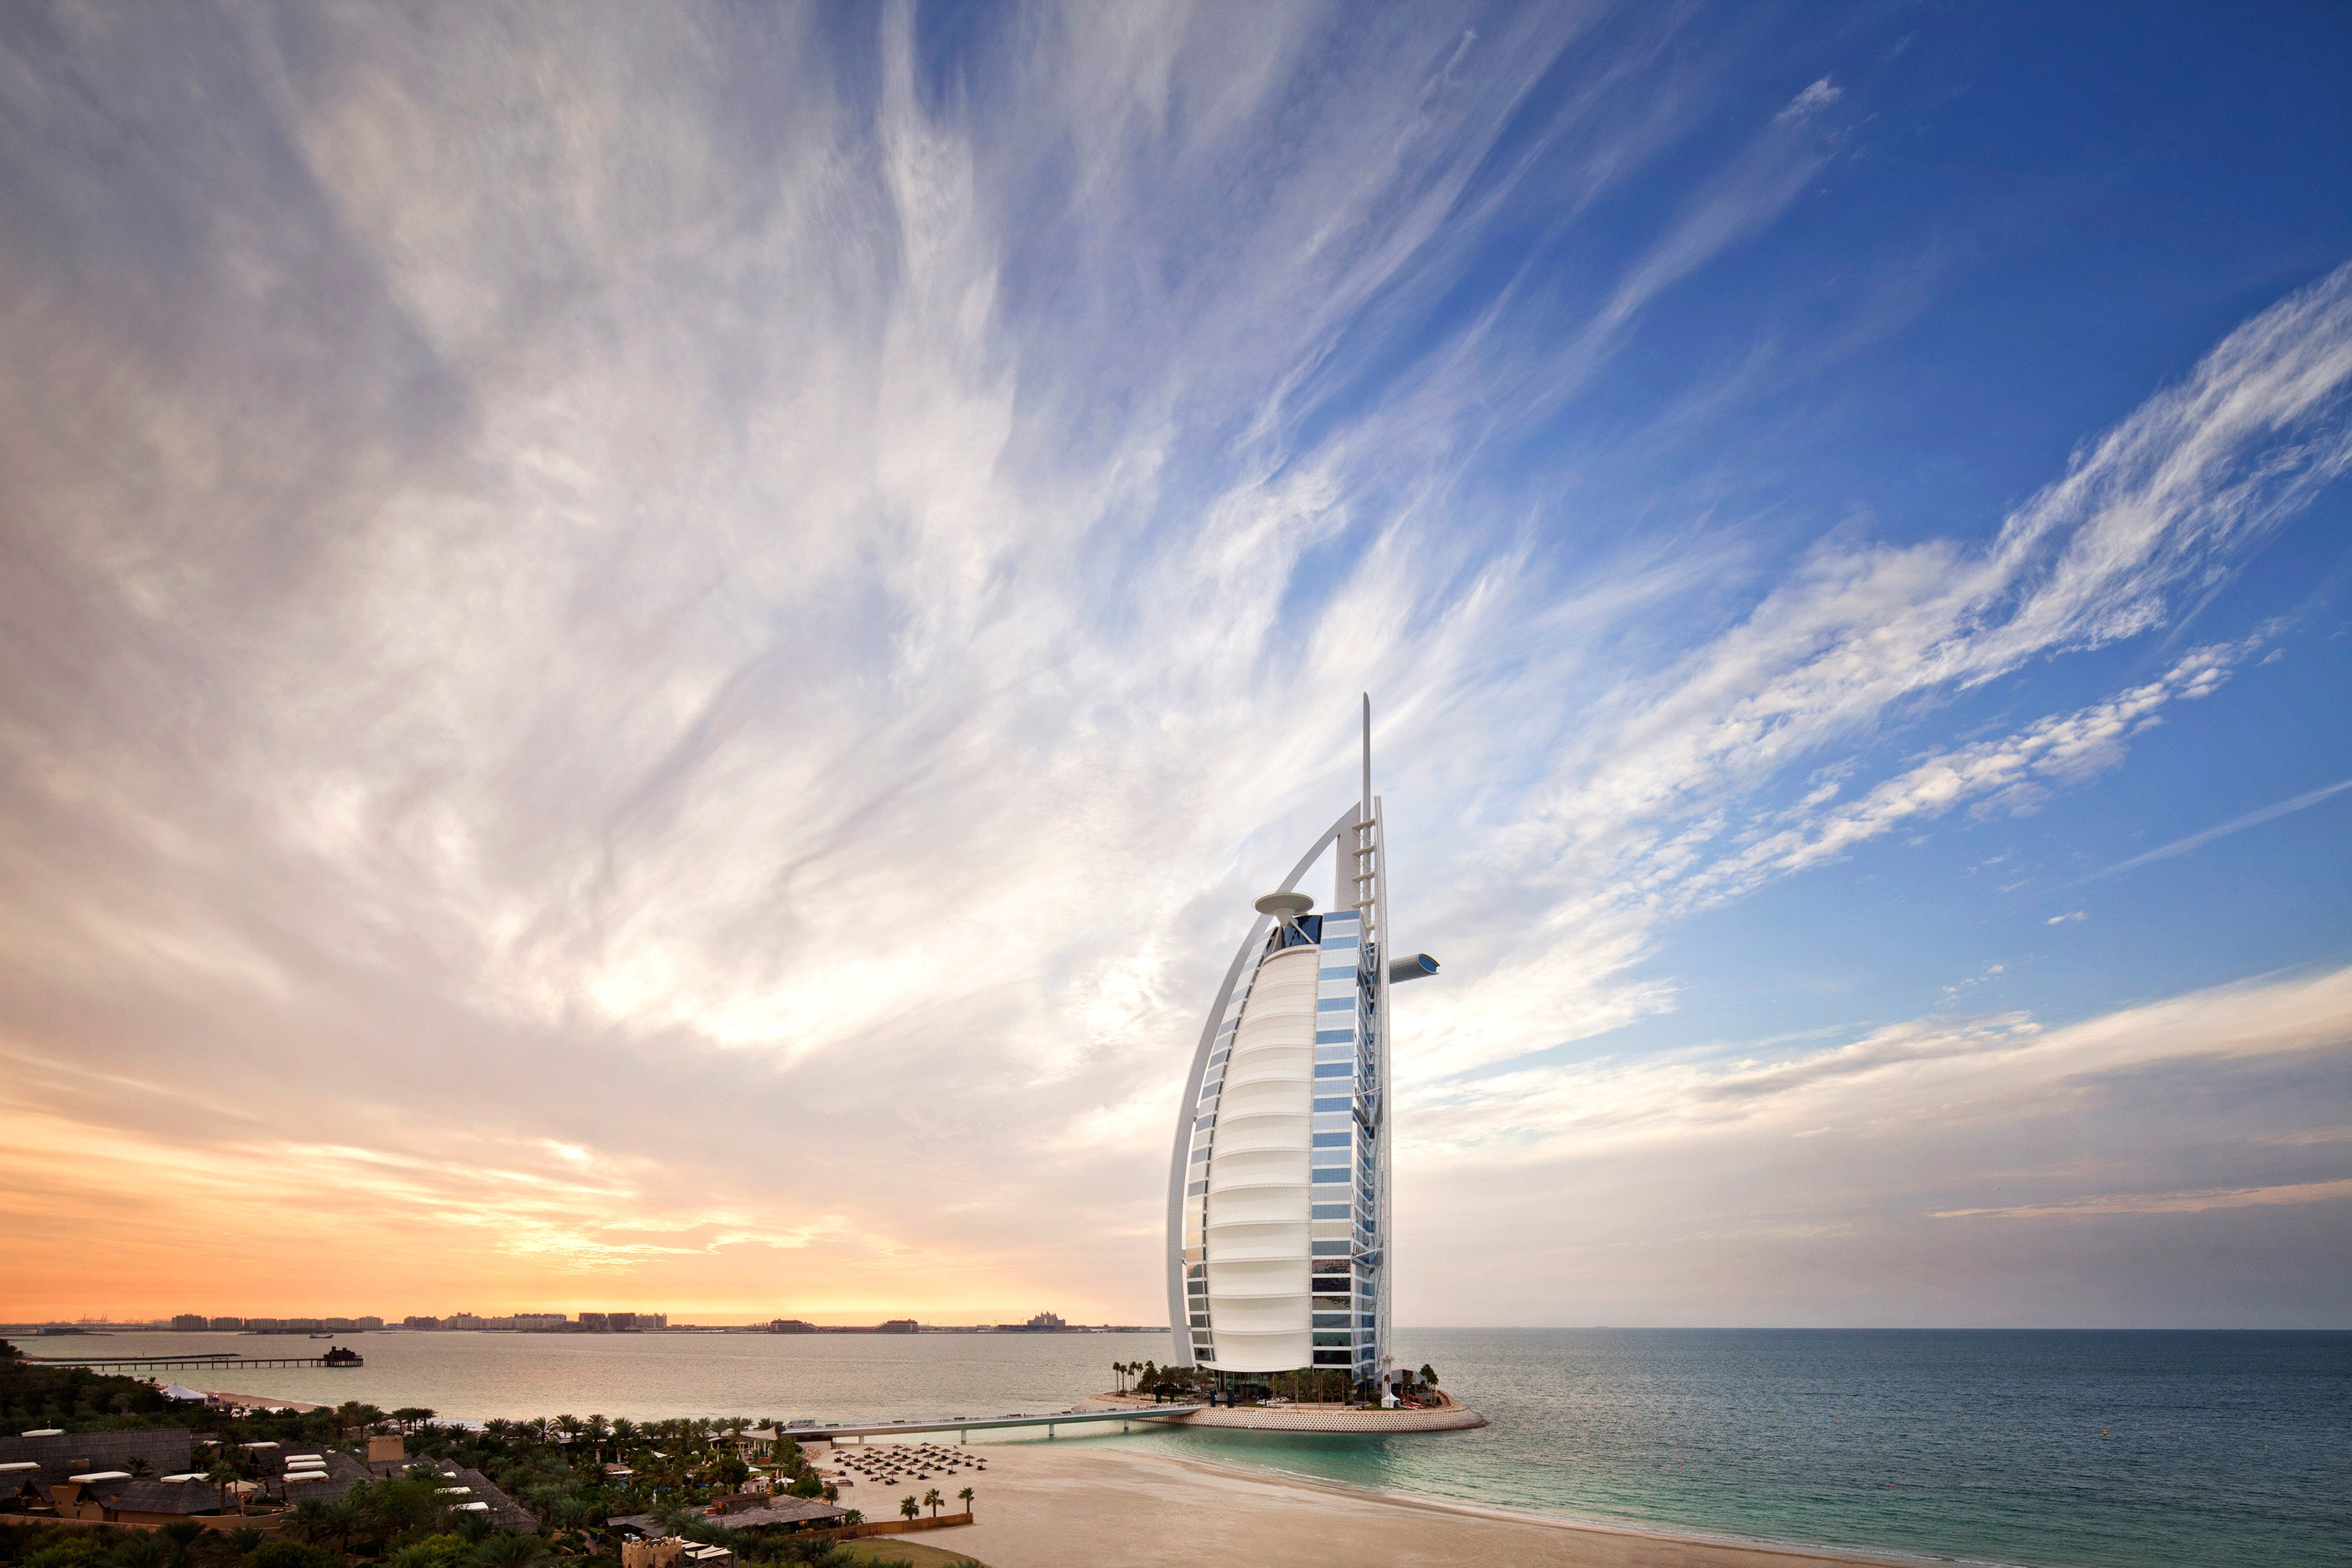 Dubai Hotels Luxury Travel Middle East sky outdoor water Sea cloud horizon Ocean tower vehicle Sunset Coast dusk sunlight evening bay wind mast shore sailing vessel clouds day distance